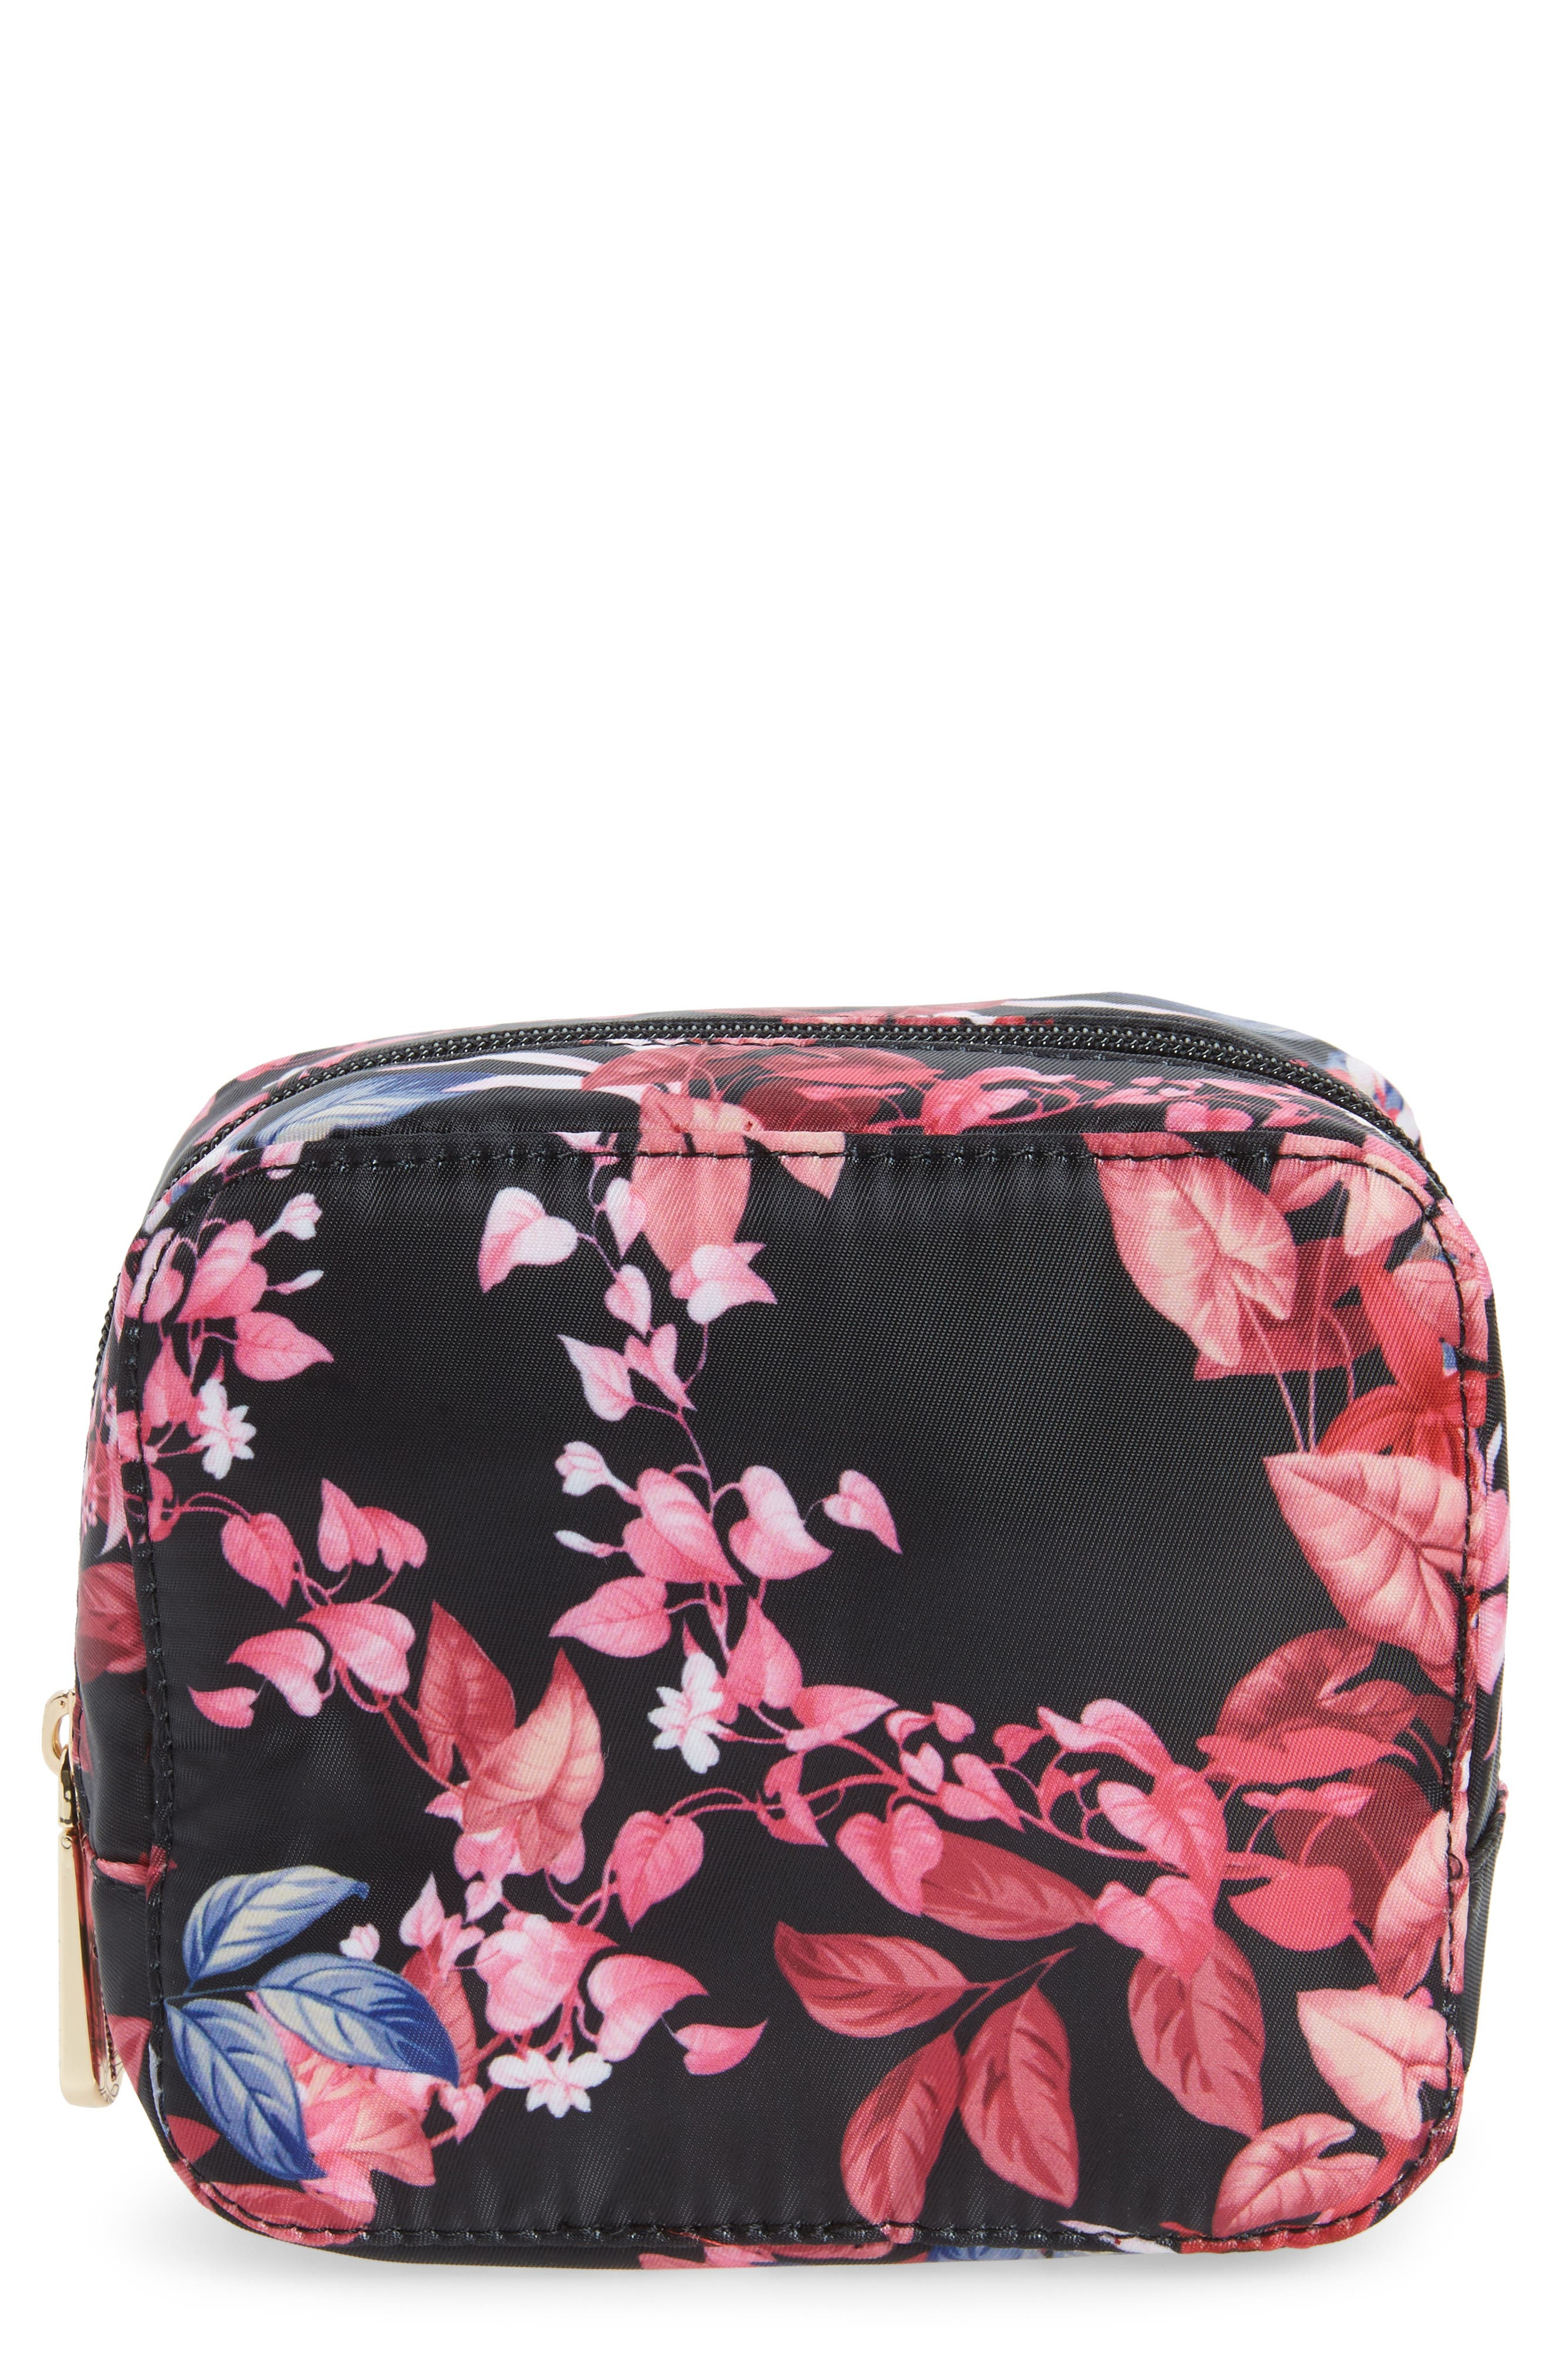 Main Image - Tommy Bahama Up in the Air Cosmetics Case & Eye Mask